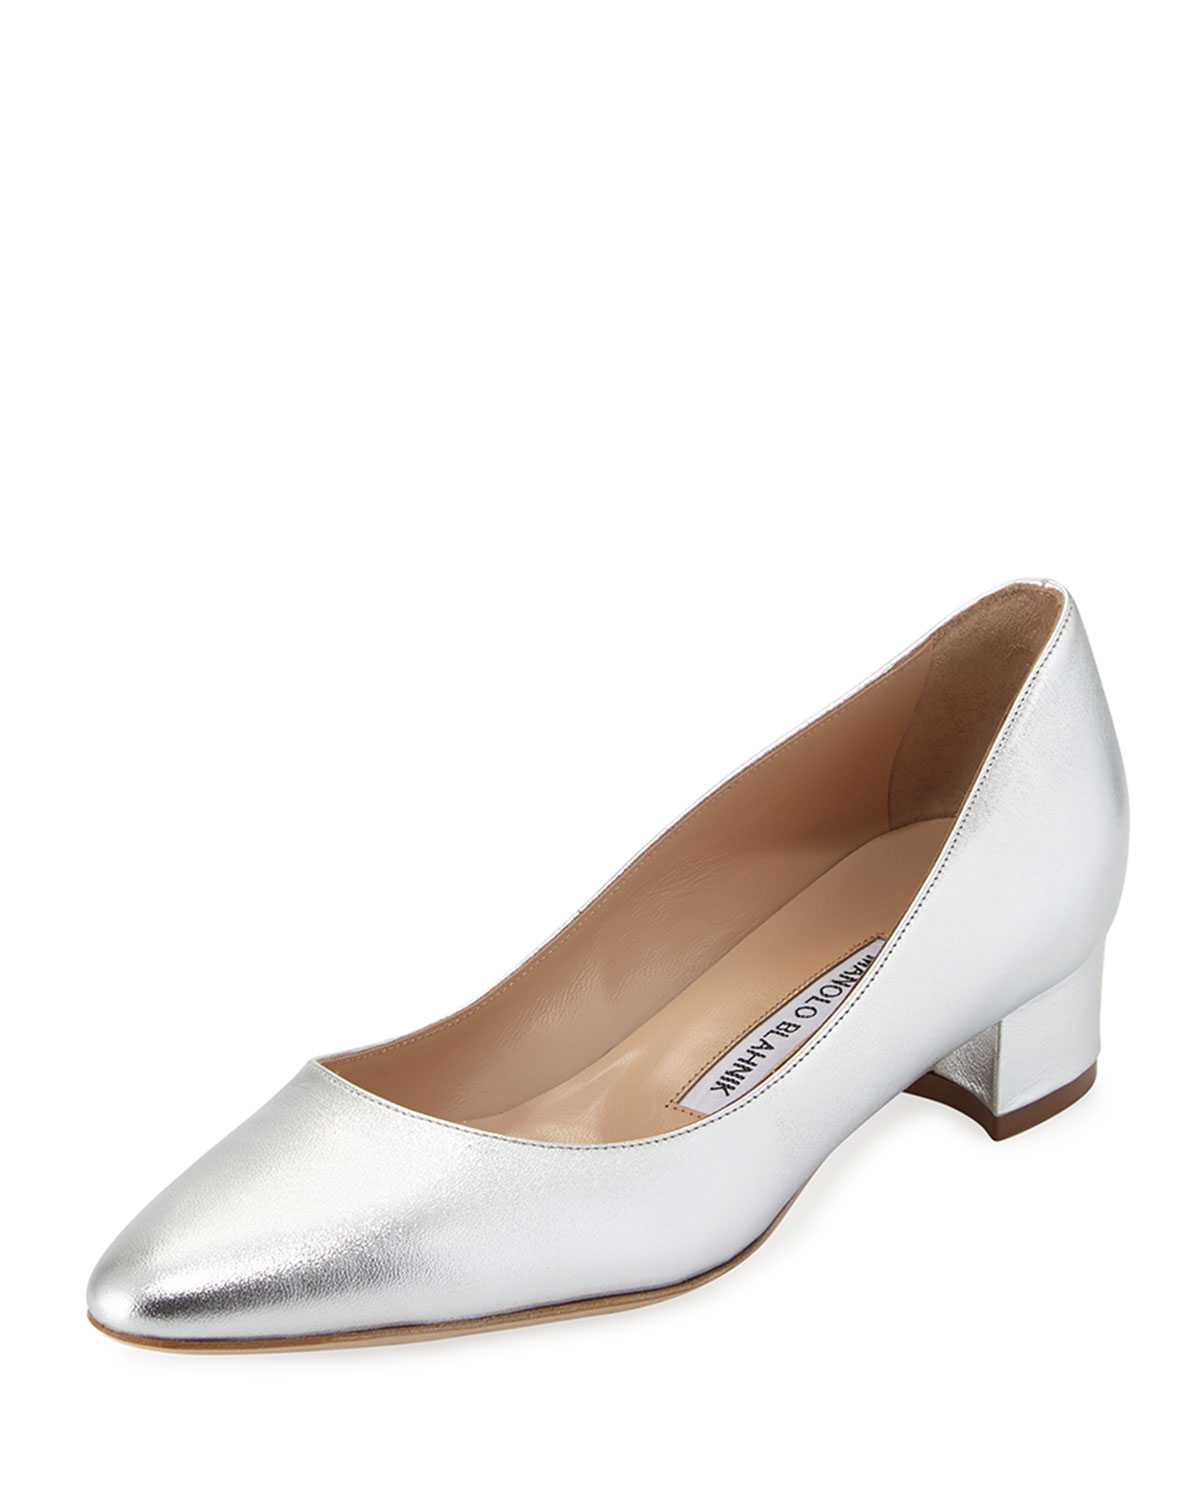 da0716337509f Manolo Blahnik Listony Leather Low-Heel Pumps | Neiman Marcus